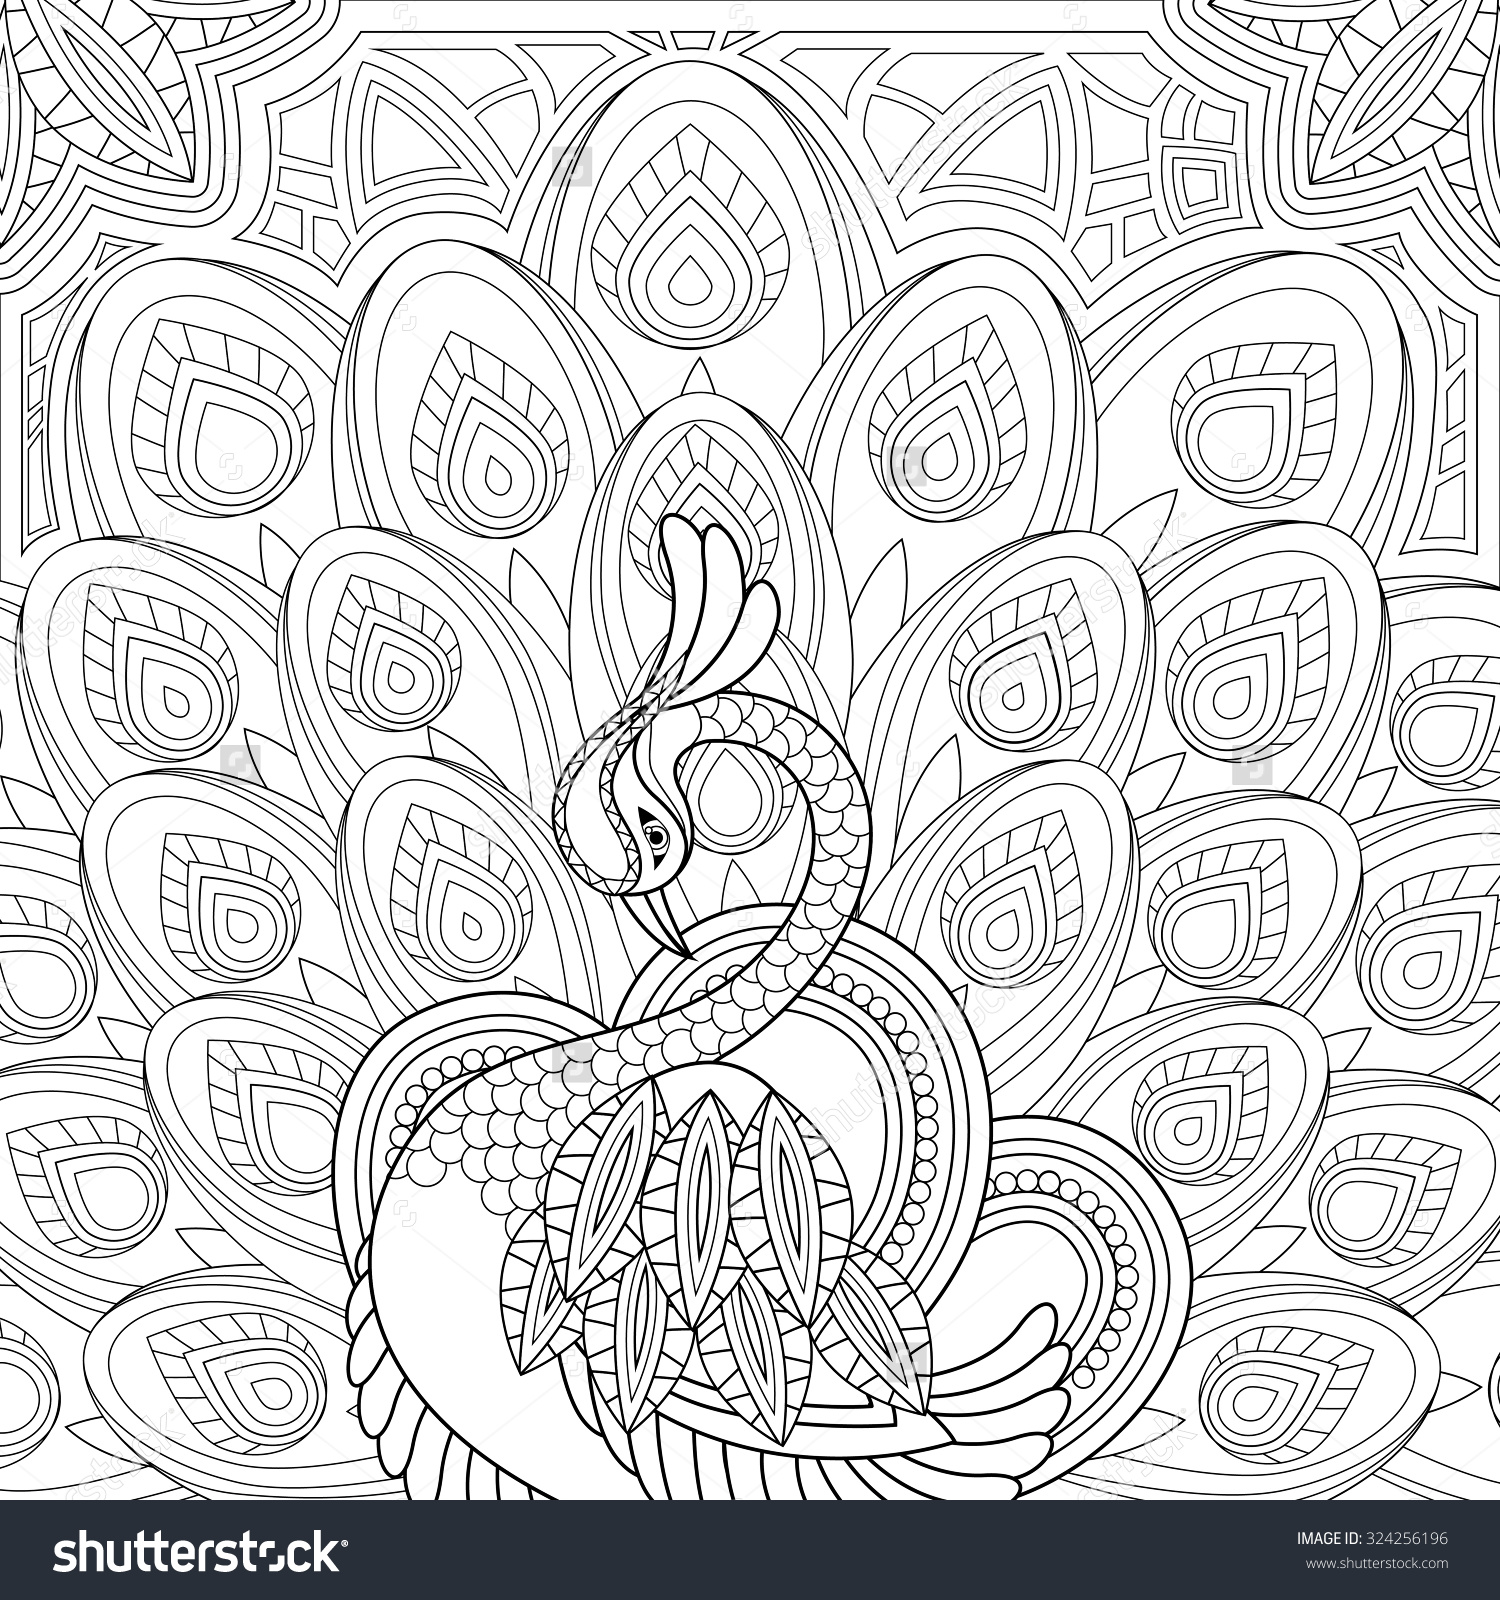 Peacock Coloring Page – Craftbnb